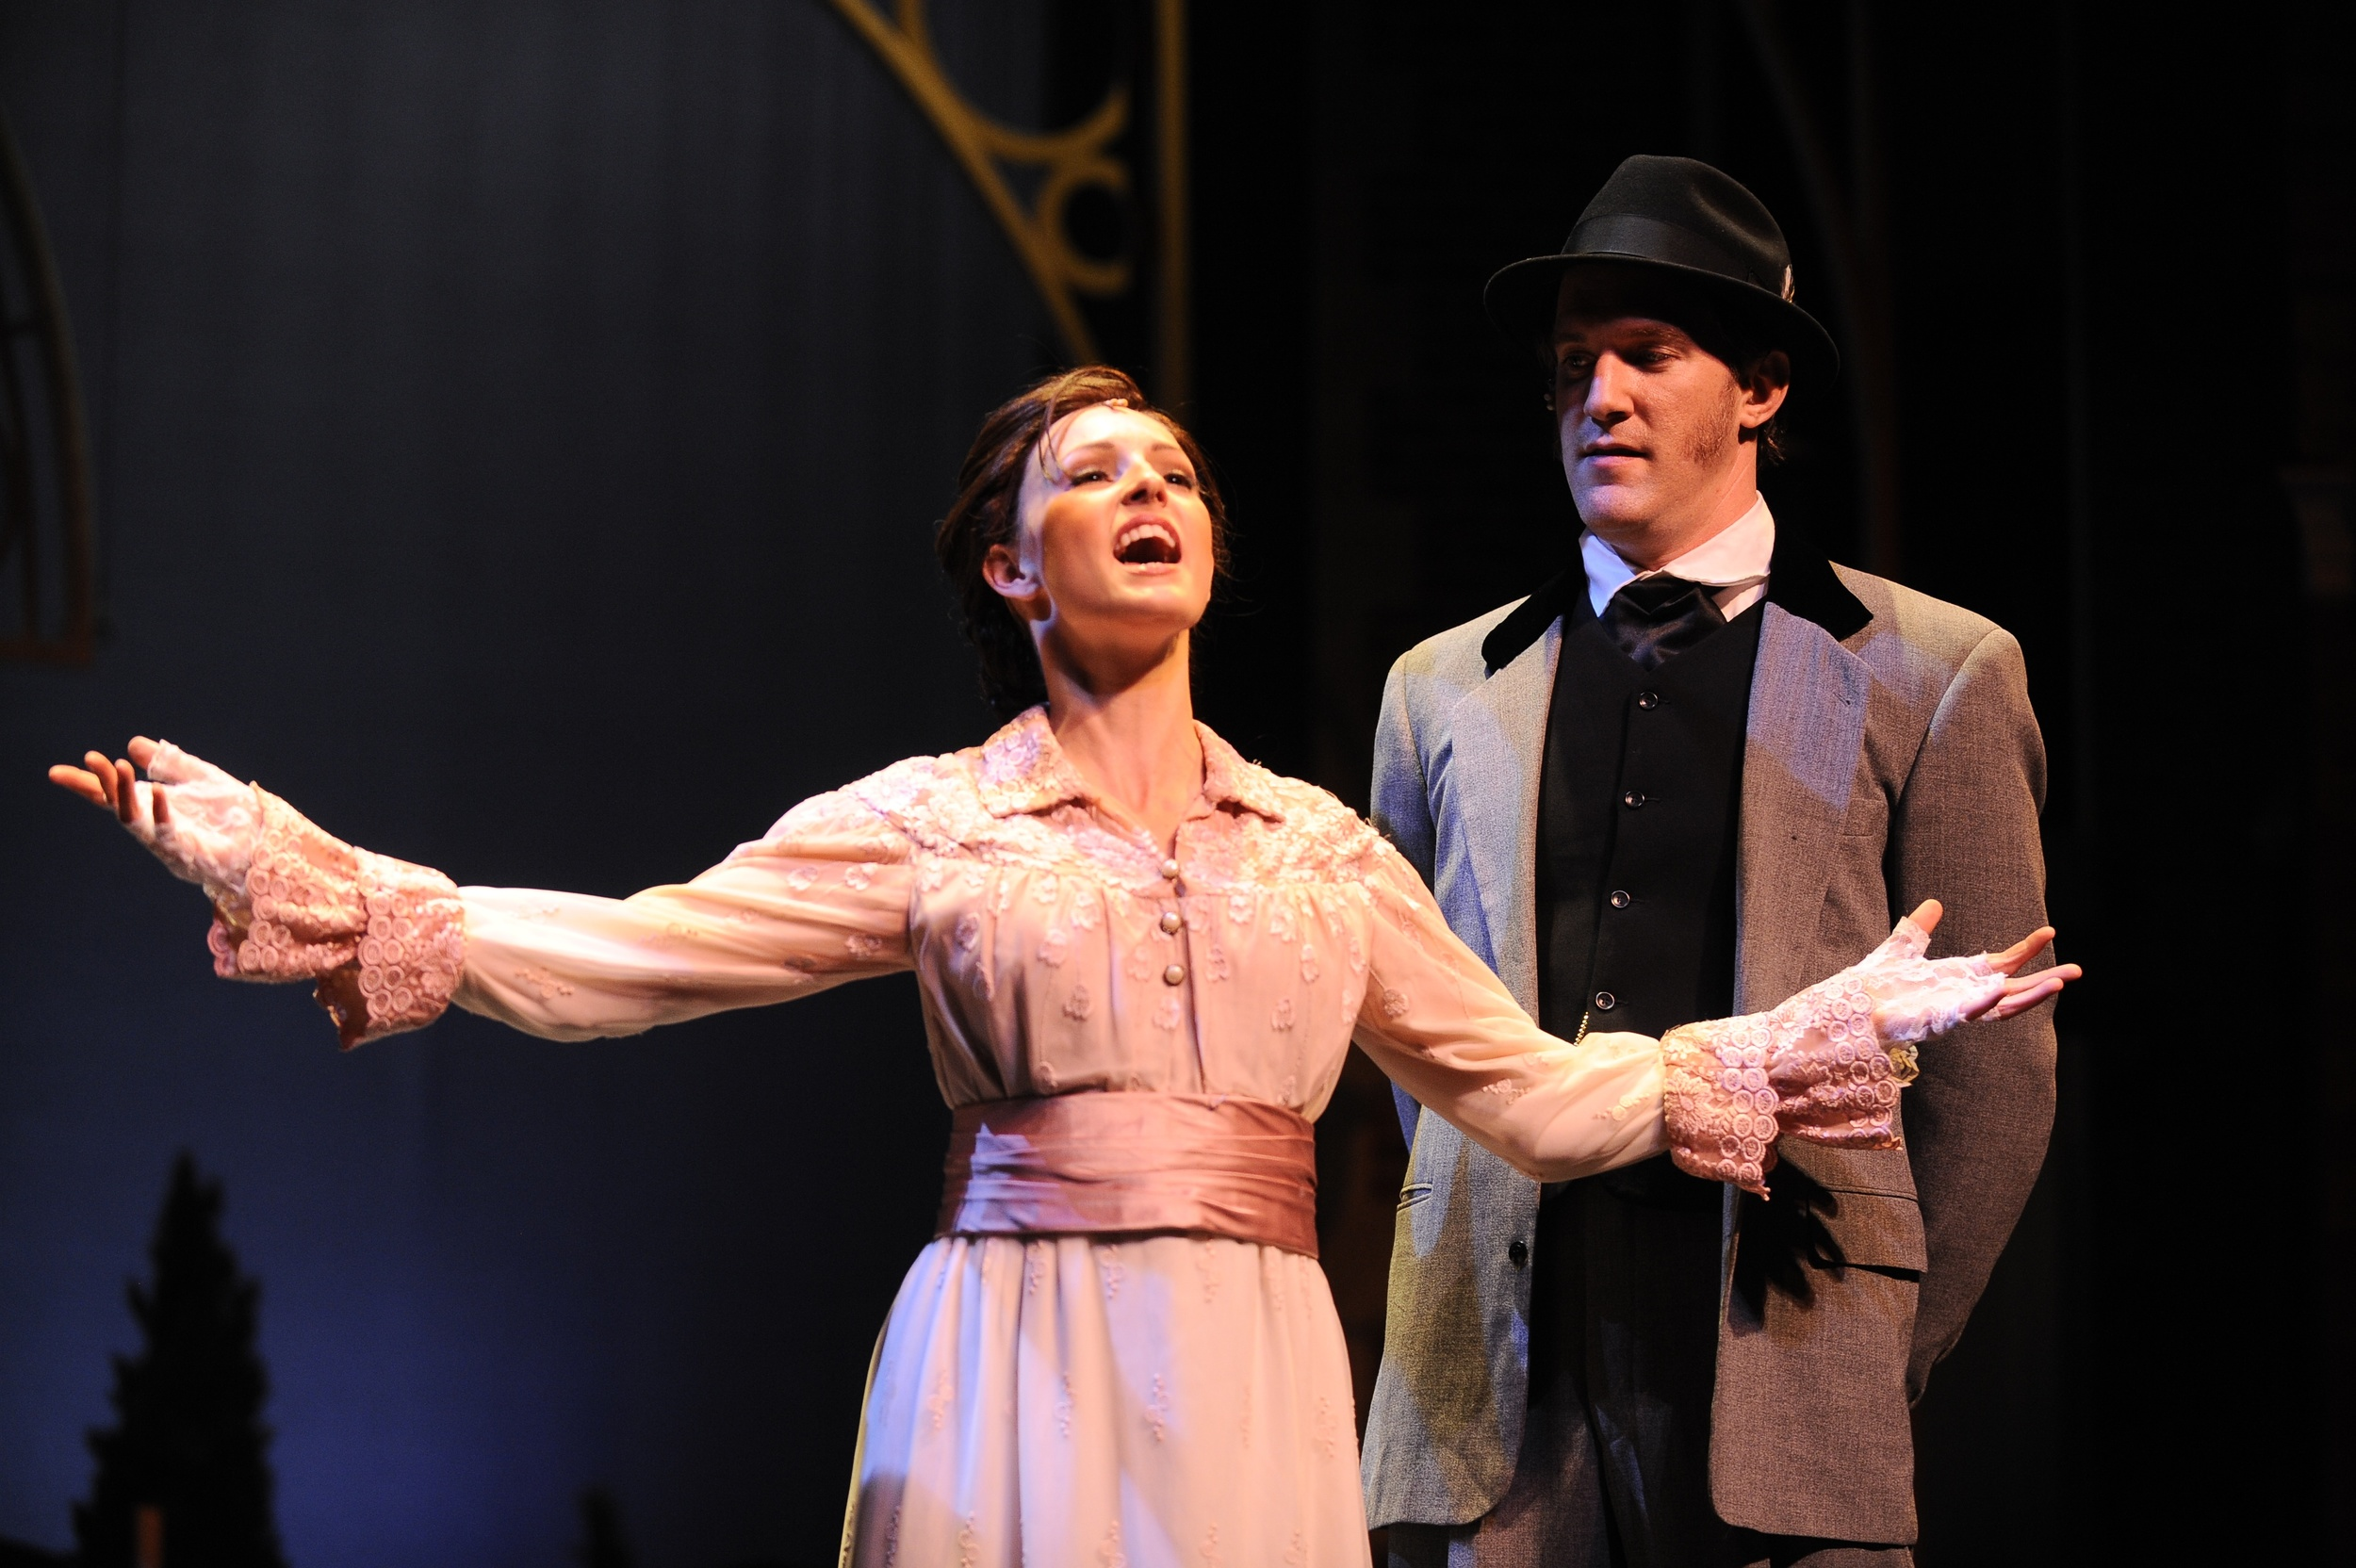 as-eliza-doolittle-in-my-fair-lady-with-nathan-hosner_6960983801_o.jpg